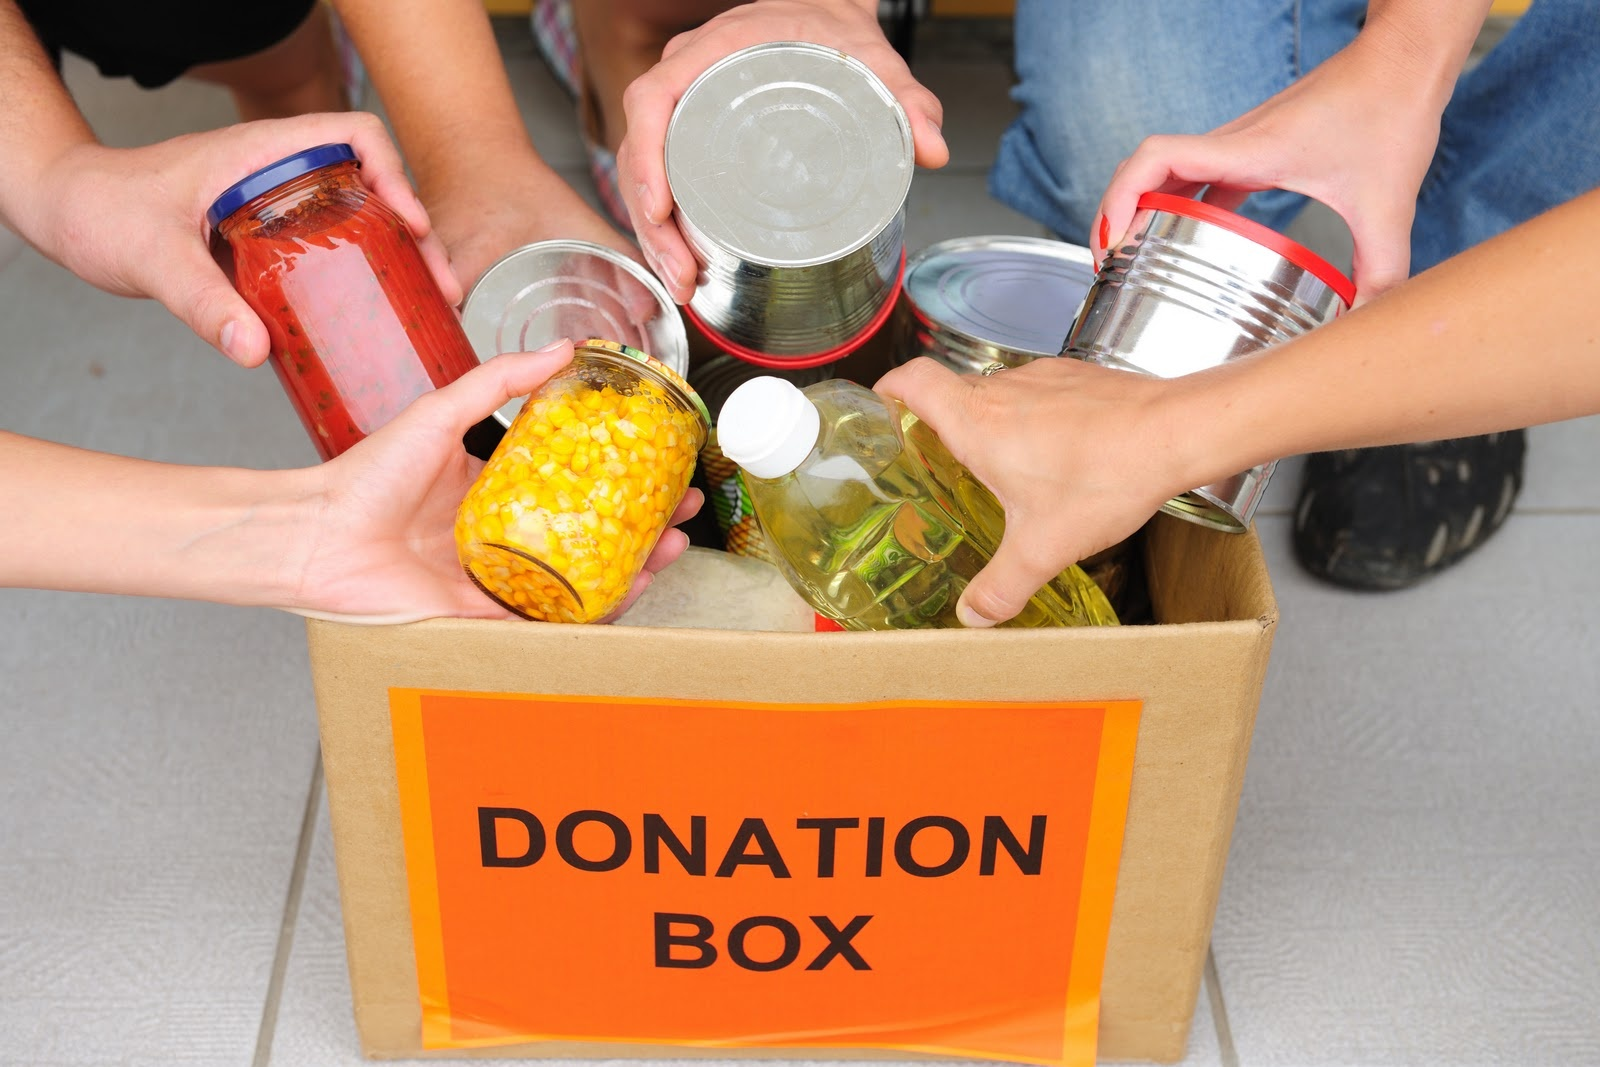 PEOPLE COME THROUGH FOR THE EDMONTON FOODBANK